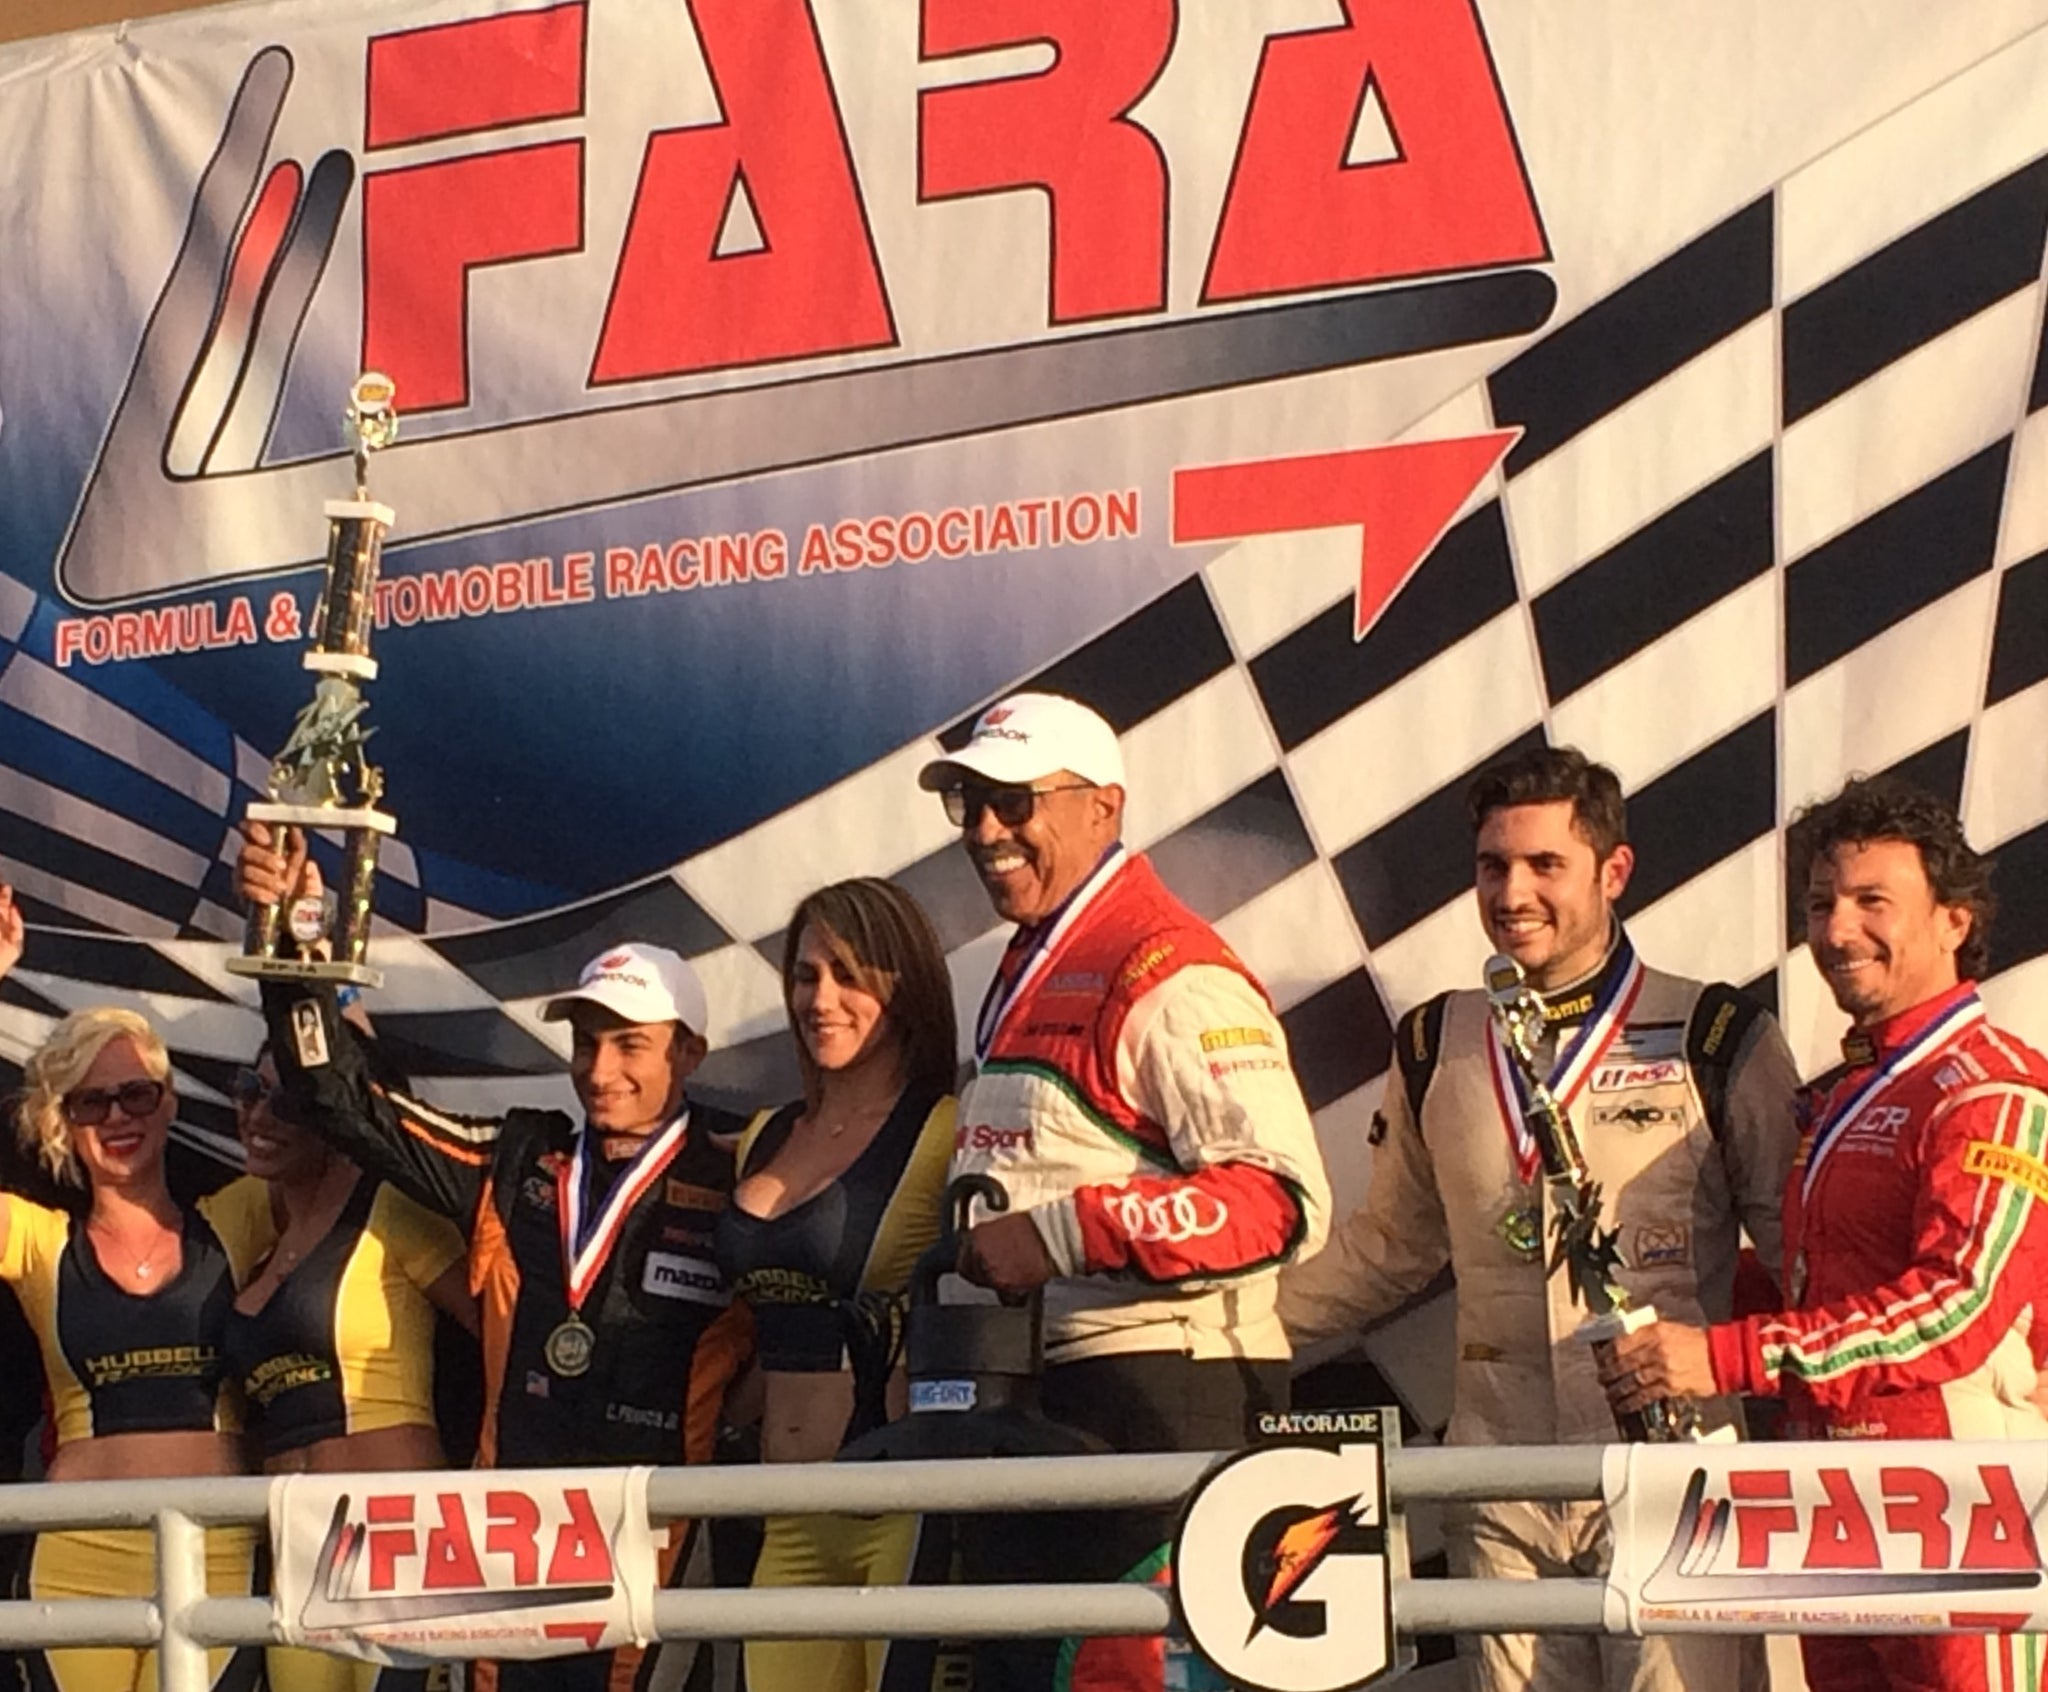 ANSA MOTORSPORTS DRIVERS WIN FARA HOMESTEAD 500!